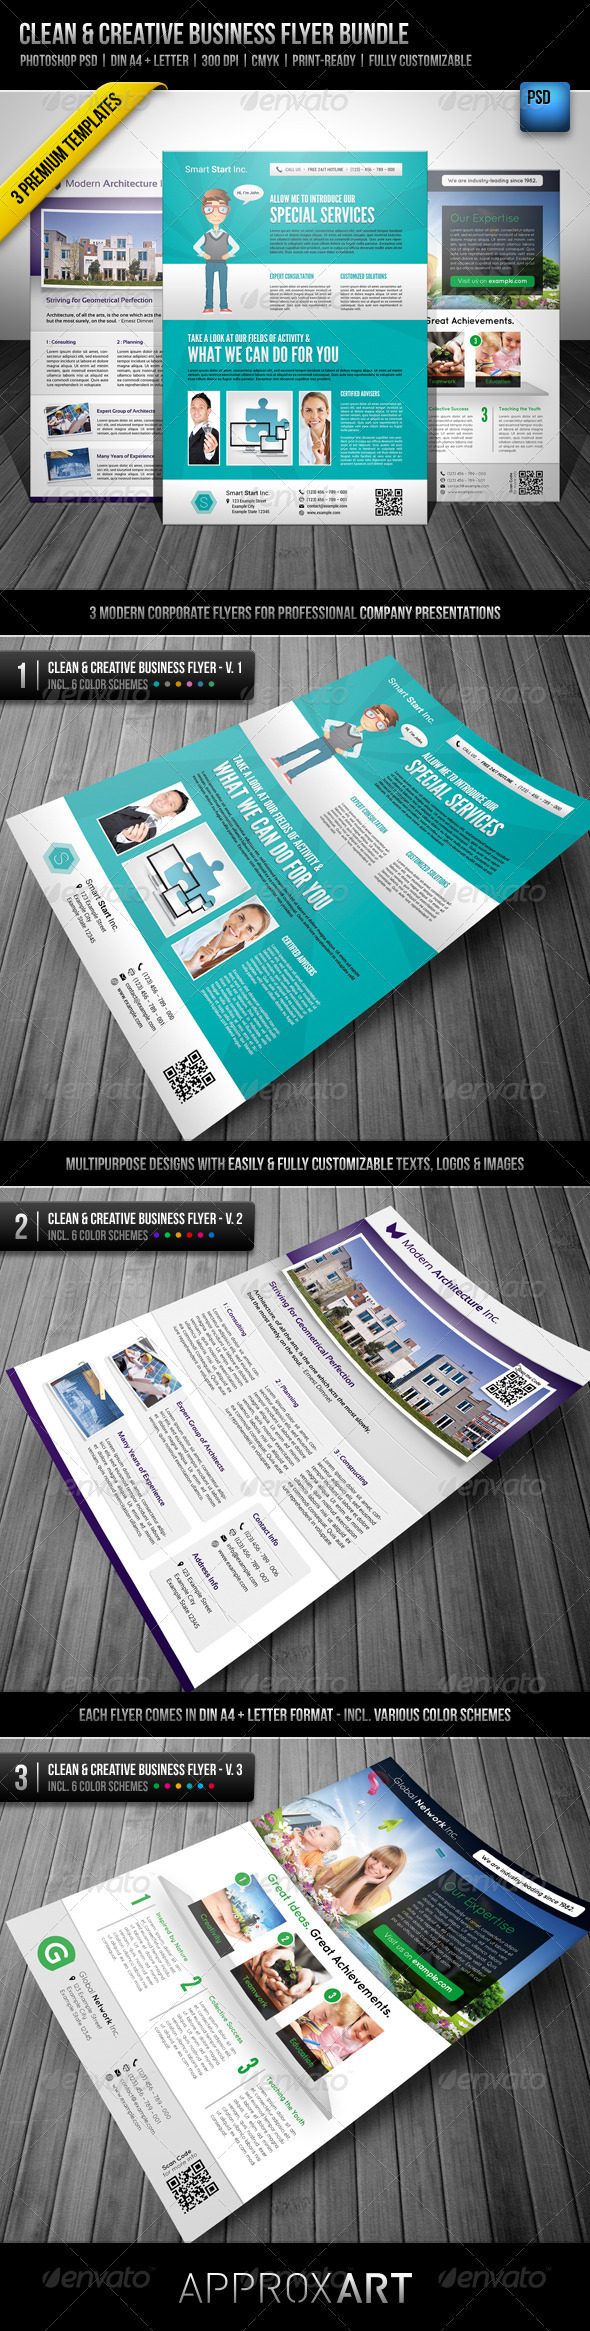 Clean & Creative Business Flyer Bundle - Corporate Flyers